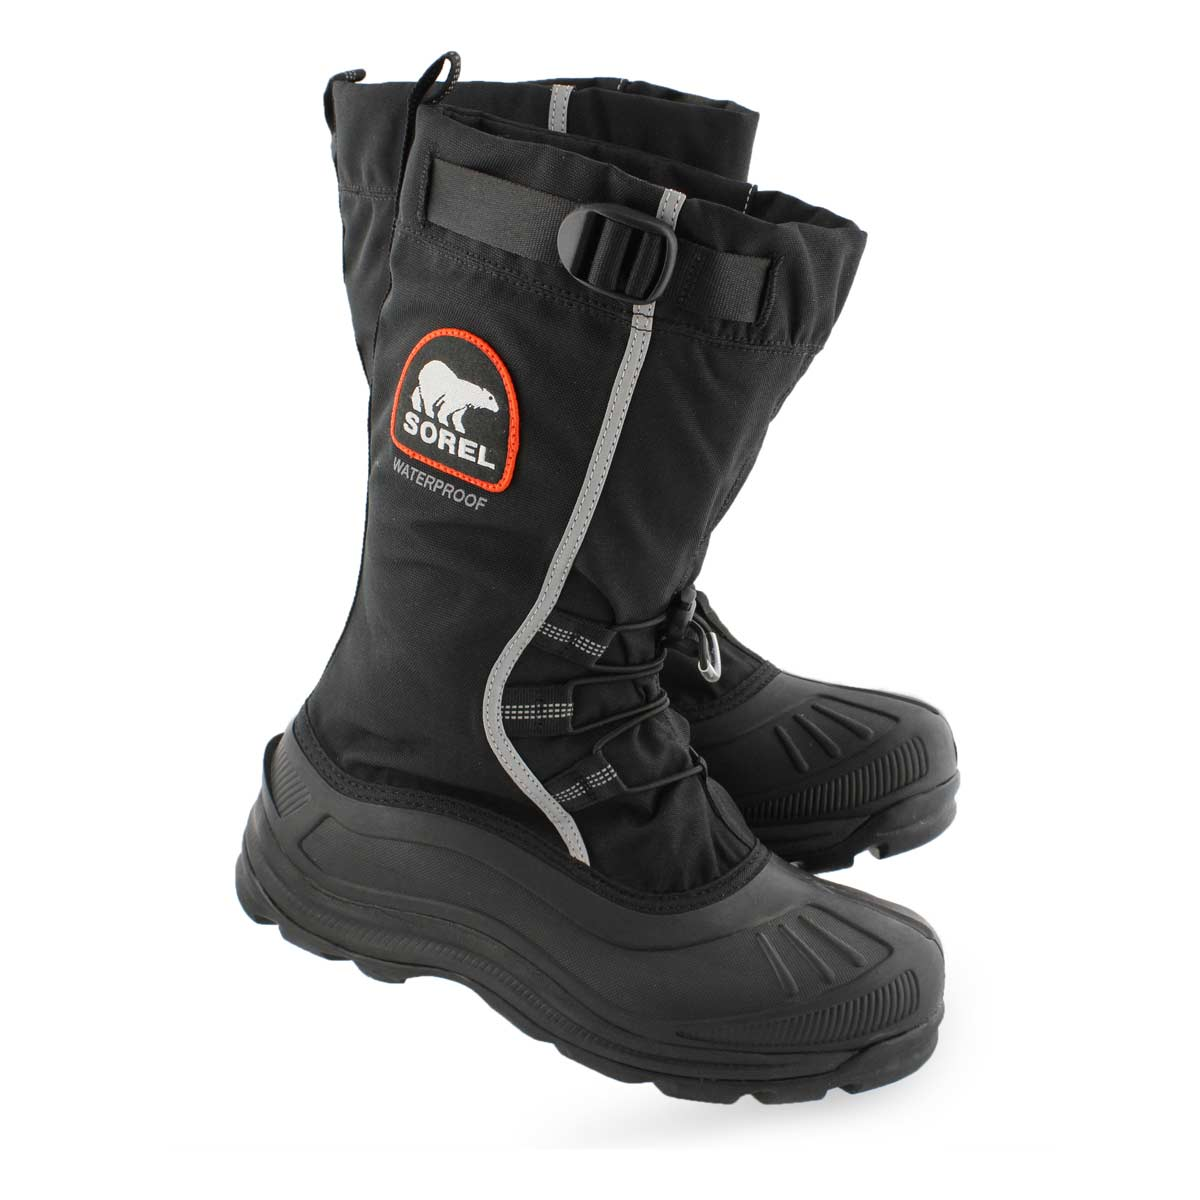 Mns Alpha PAC blk/red wtpf winter boot